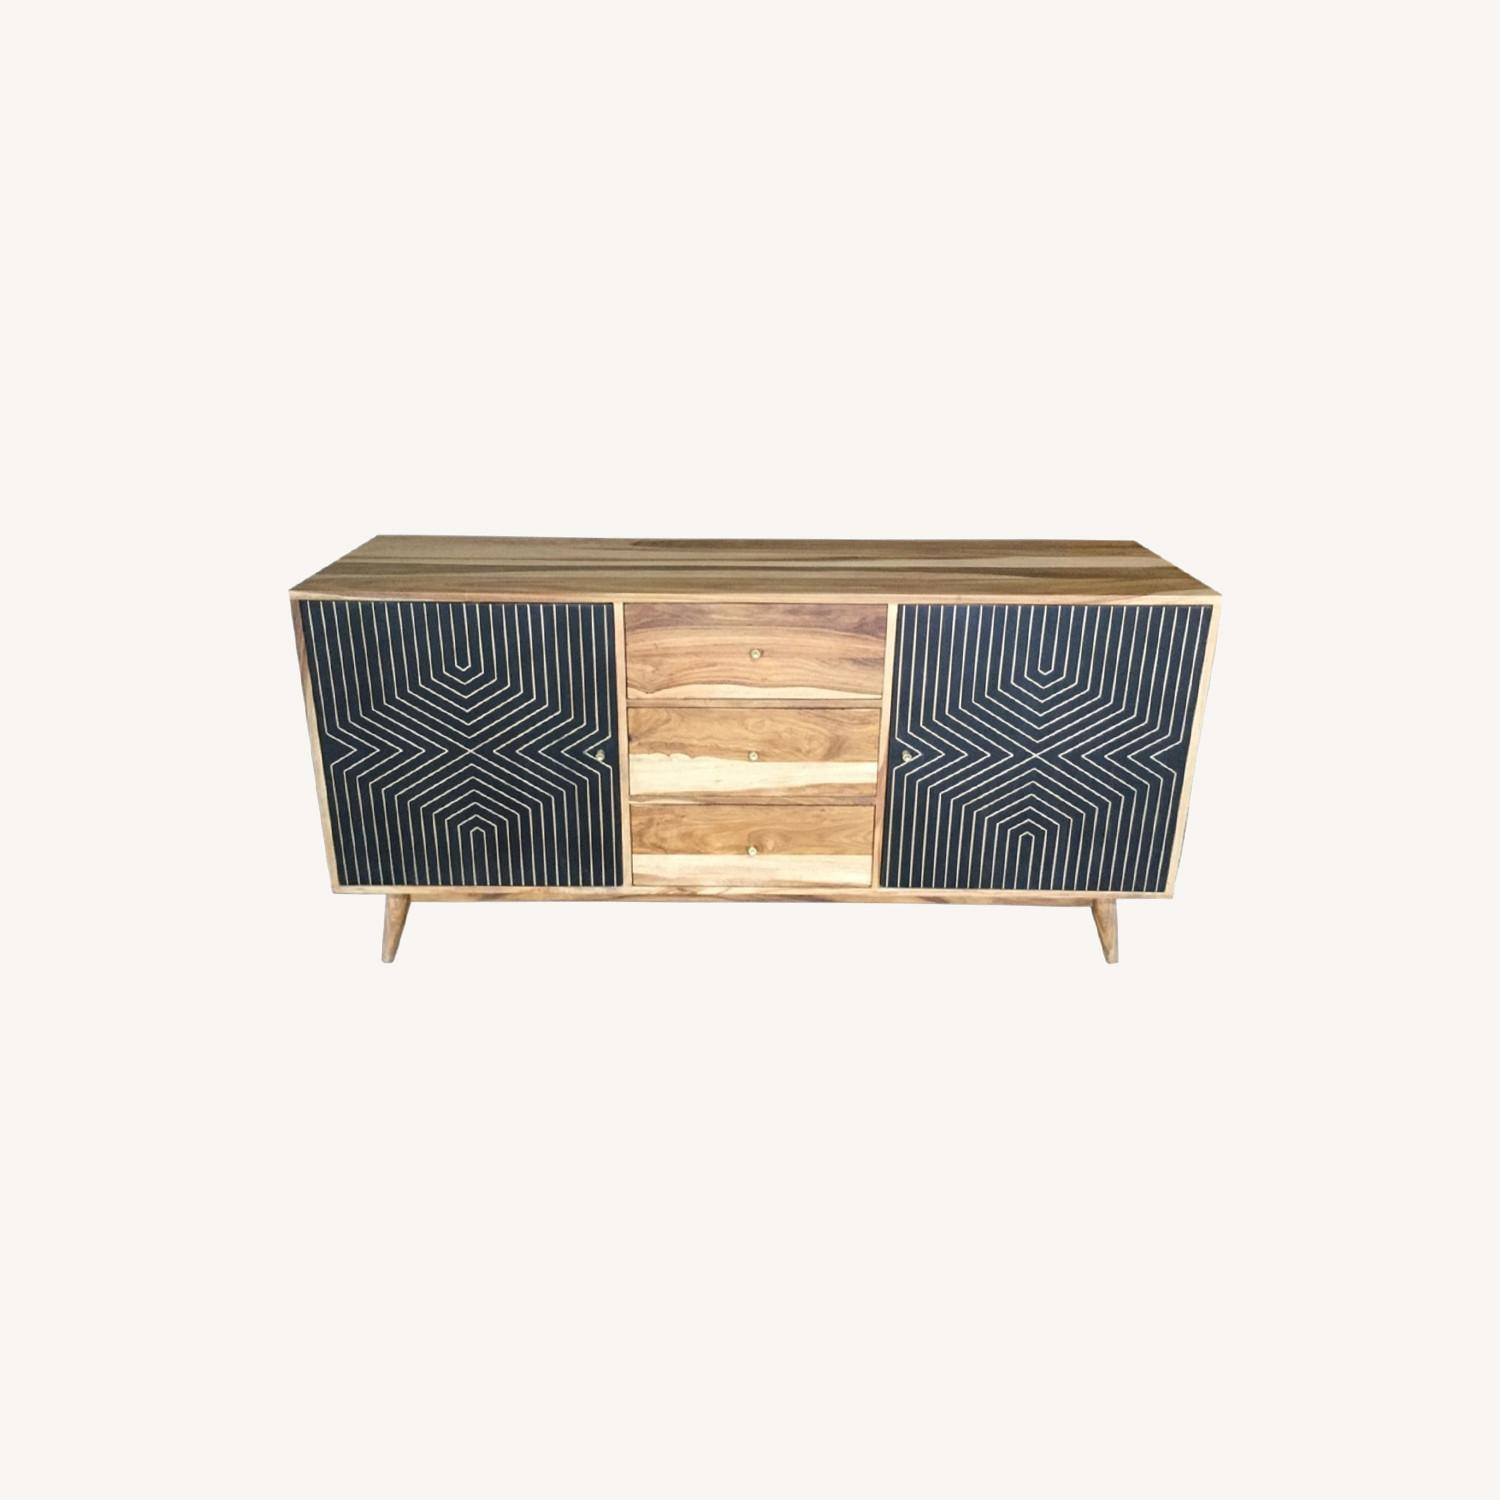 Server In Natural Finish W/ Art Deco Inspired - image-4